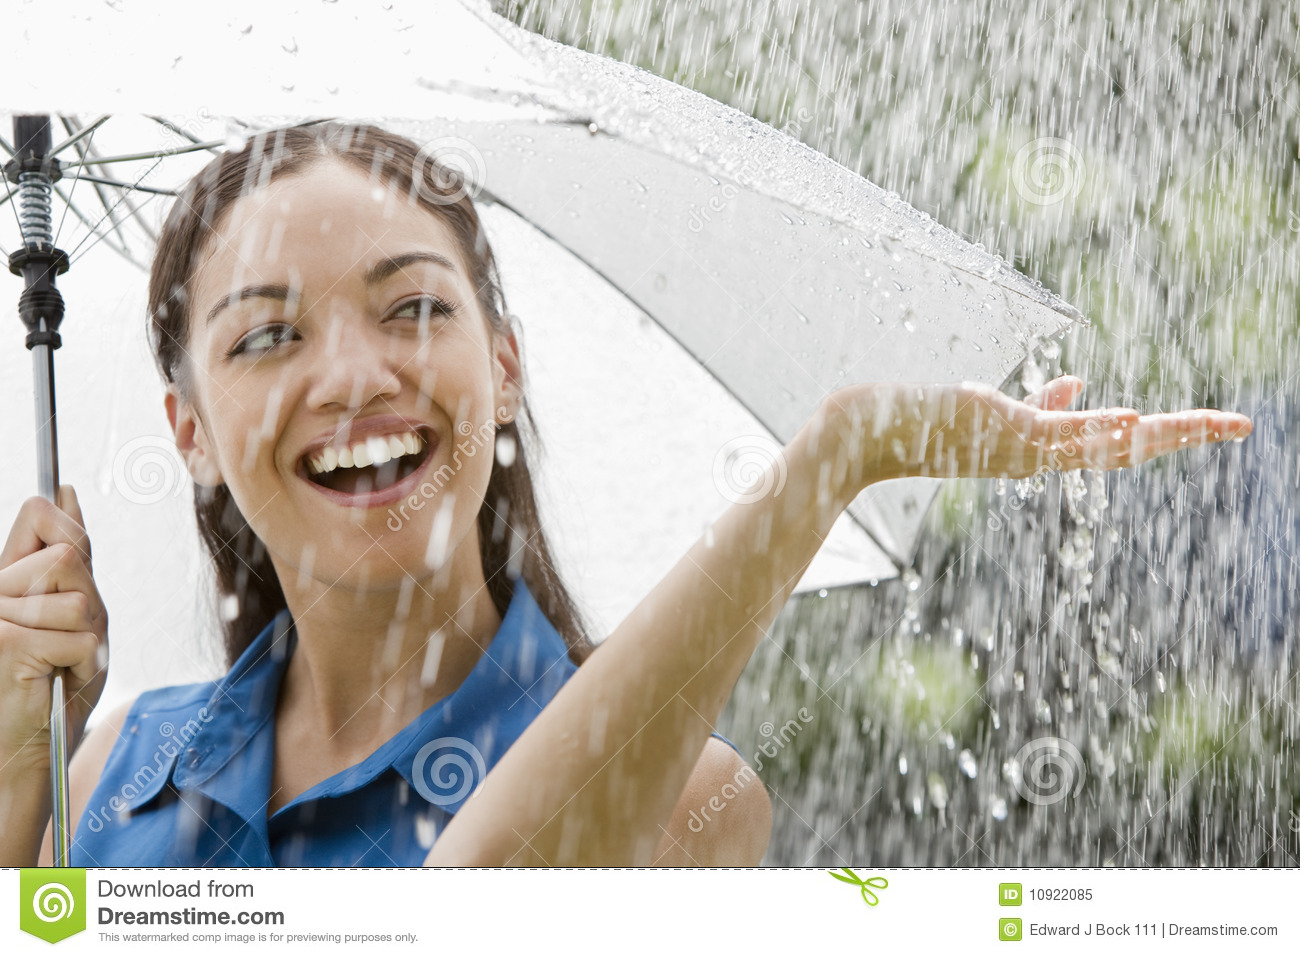 Woman With Umbrella In The Rain Stock Image - Image of ...